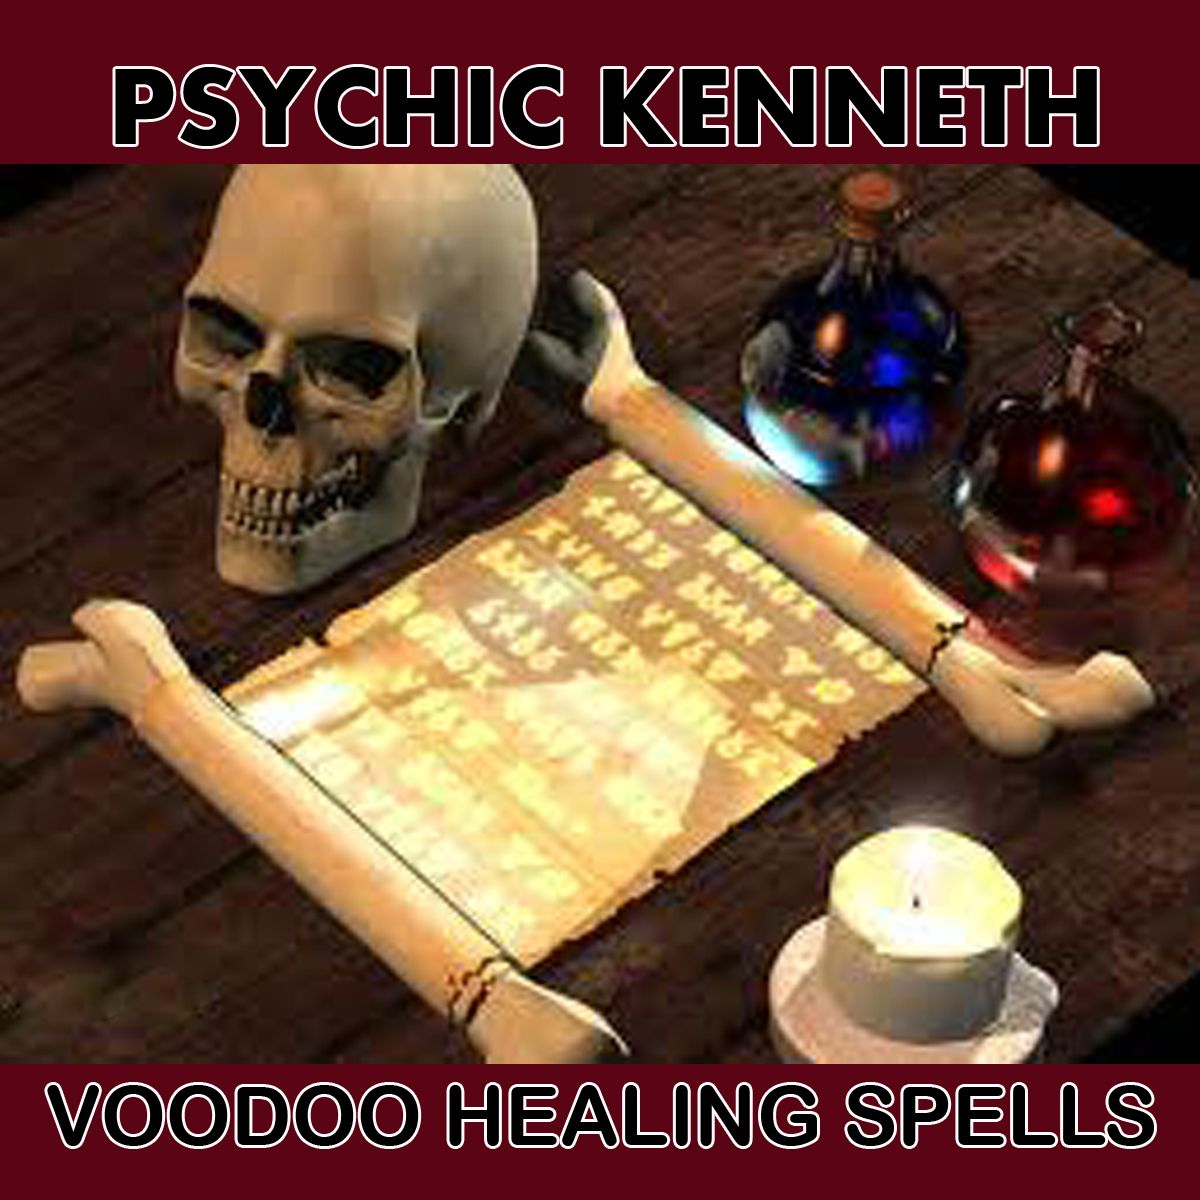 Powerful Psychic Spells, Call, WhatsApp +27843769238 | Find